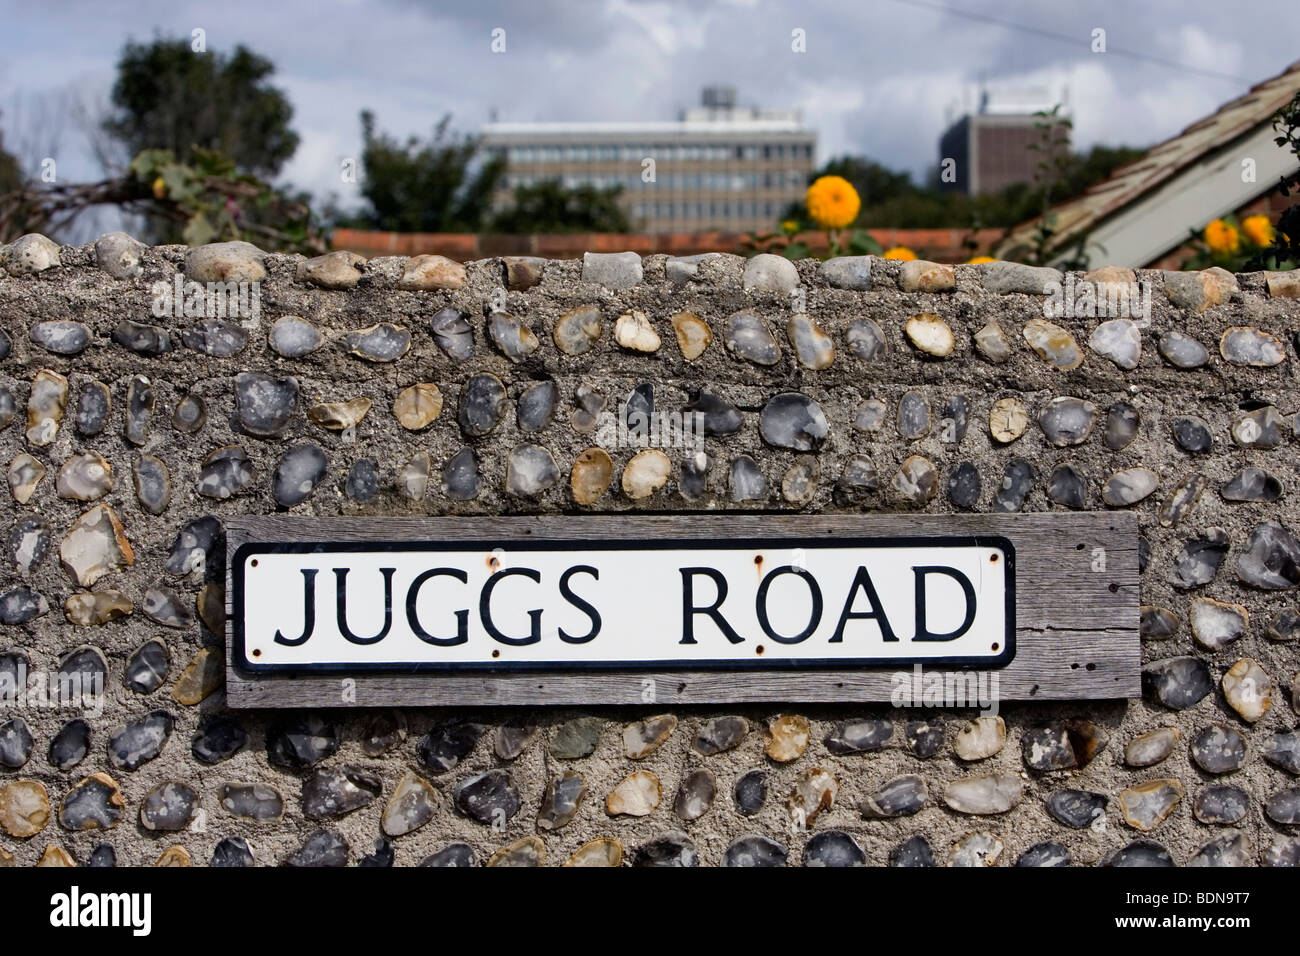 A funny road name sign in Lewes, East Sussex, UK. - Stock Image